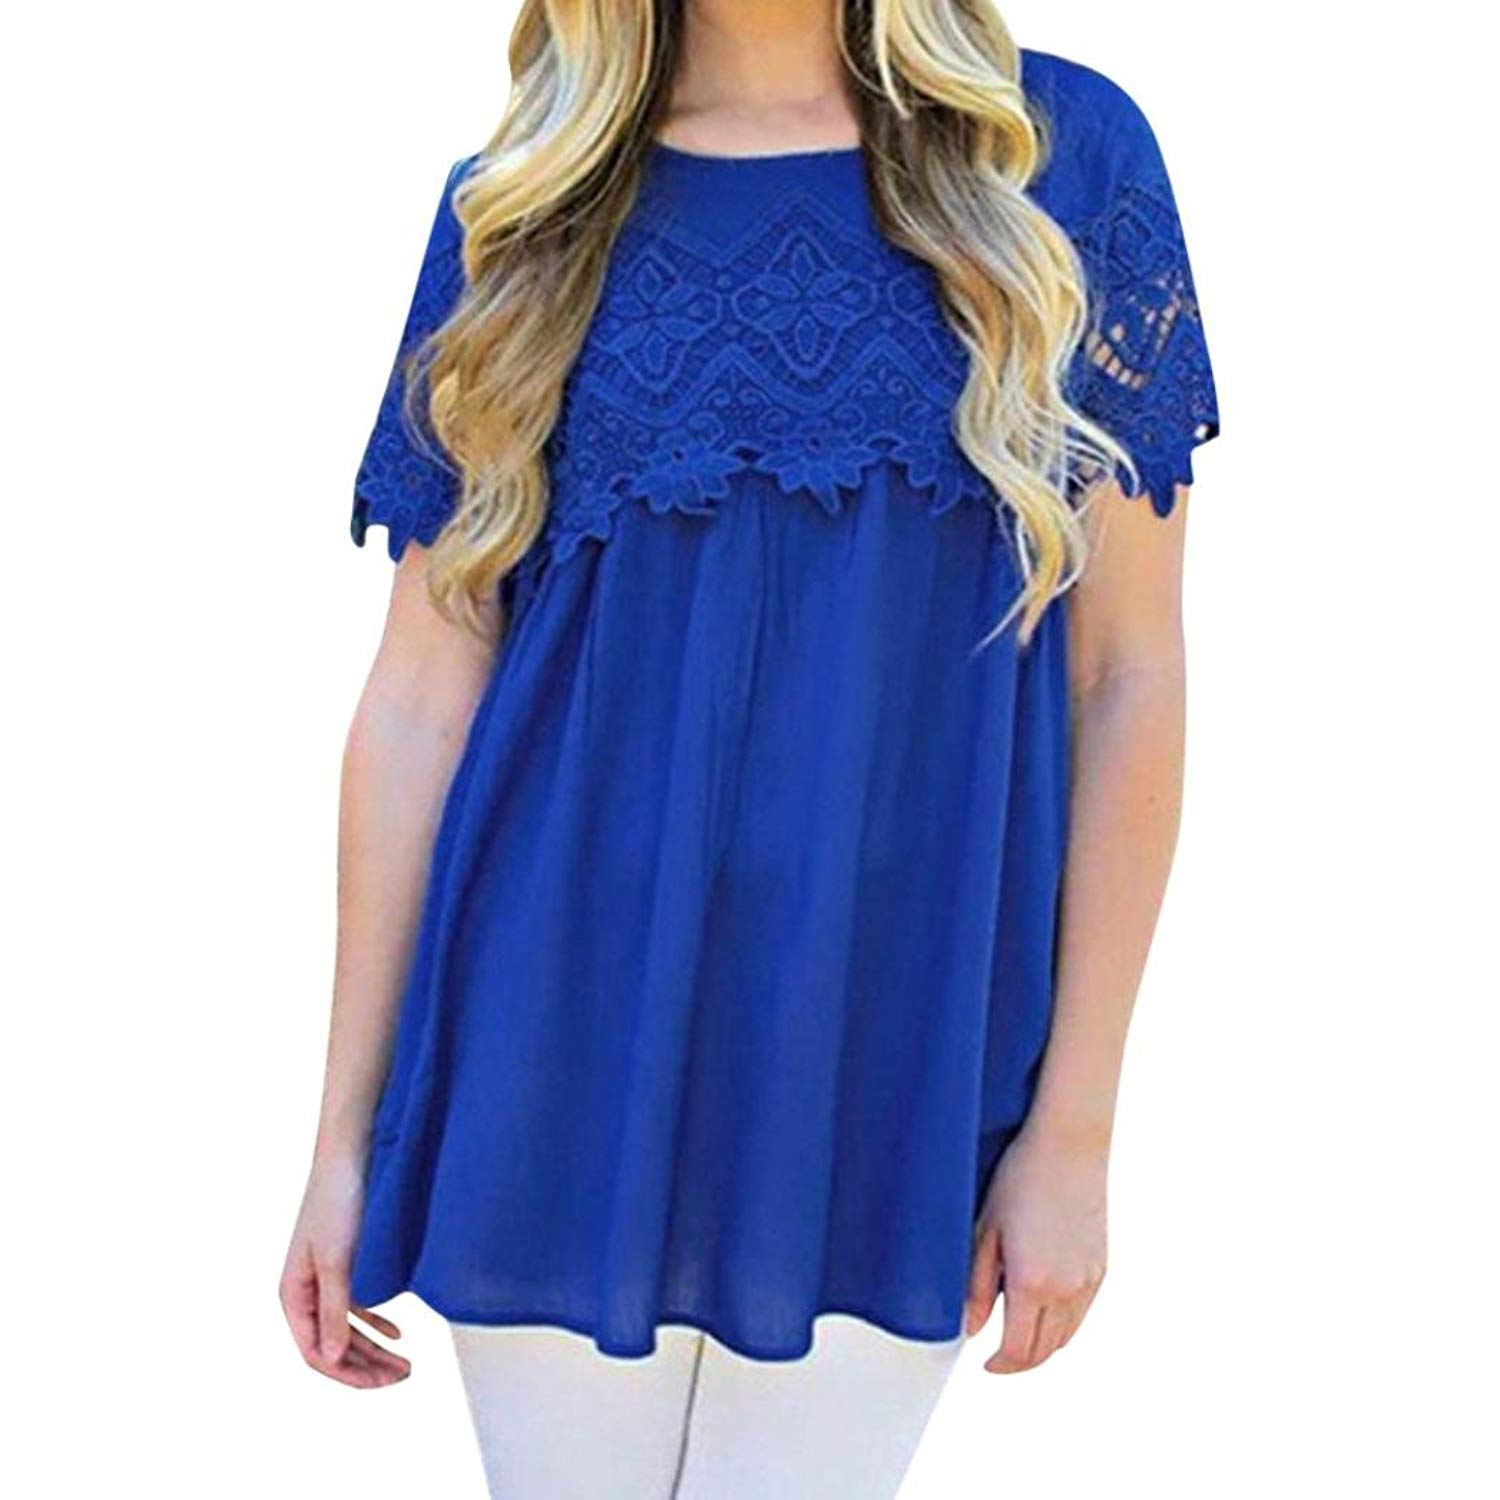 Siaokim Tops For Women Hot Sale Women Tunic Tops Summer Casual Solid Lace O Neck T-Shirt Short Sleeve Loose Blouse